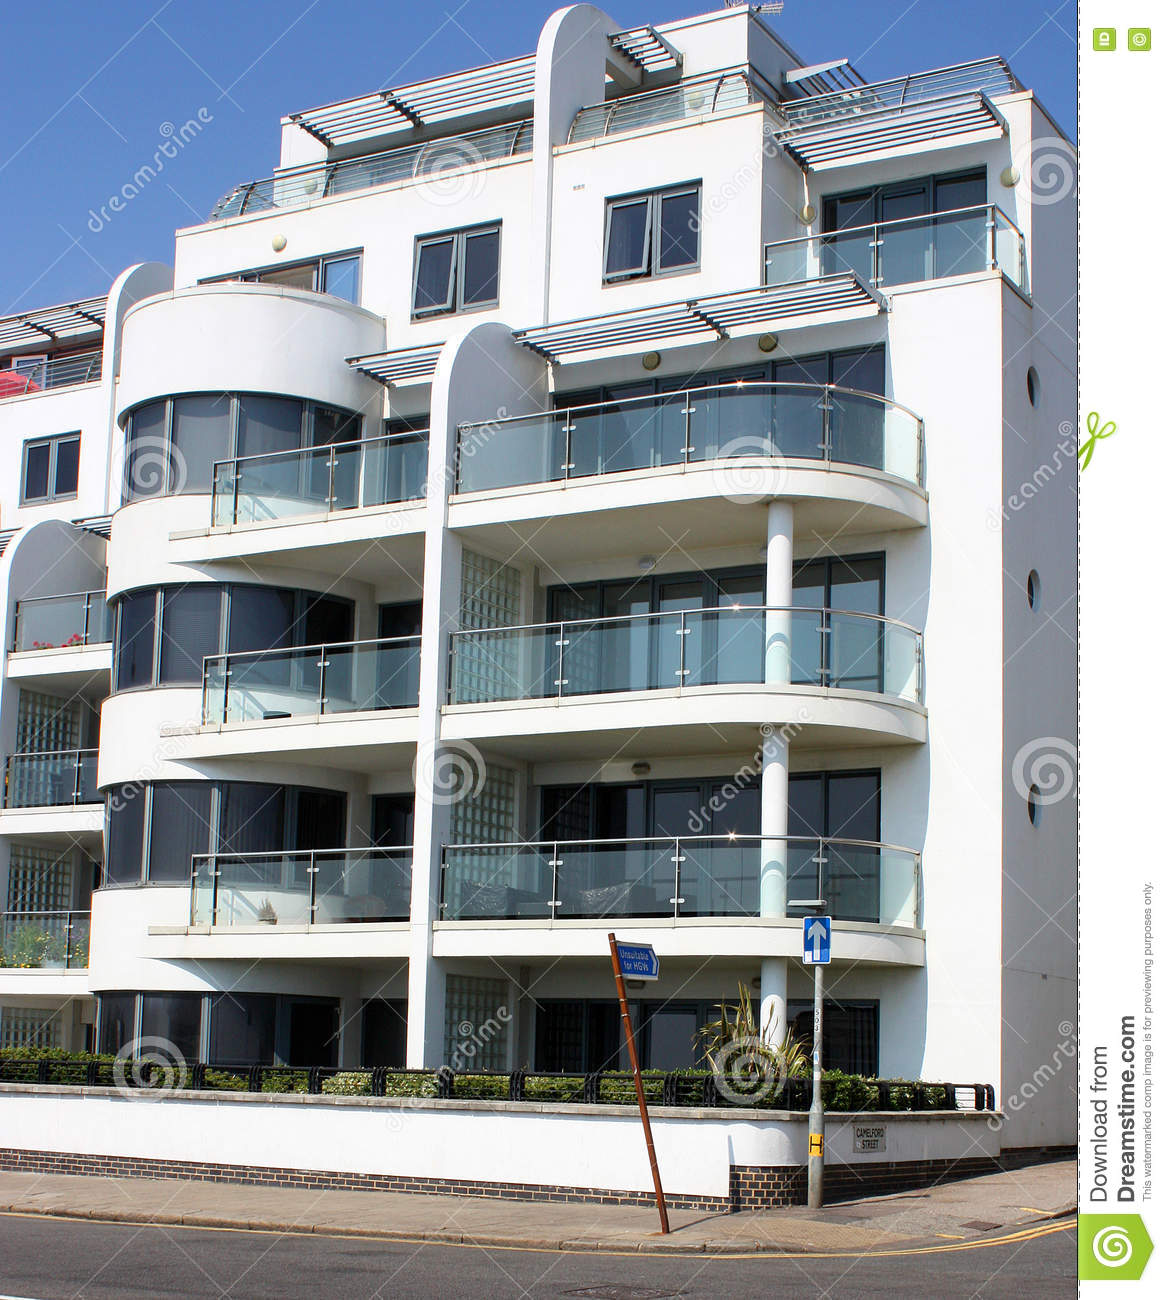 Art Deco Residential: Modern Art Deco Style Apartments Stock Image